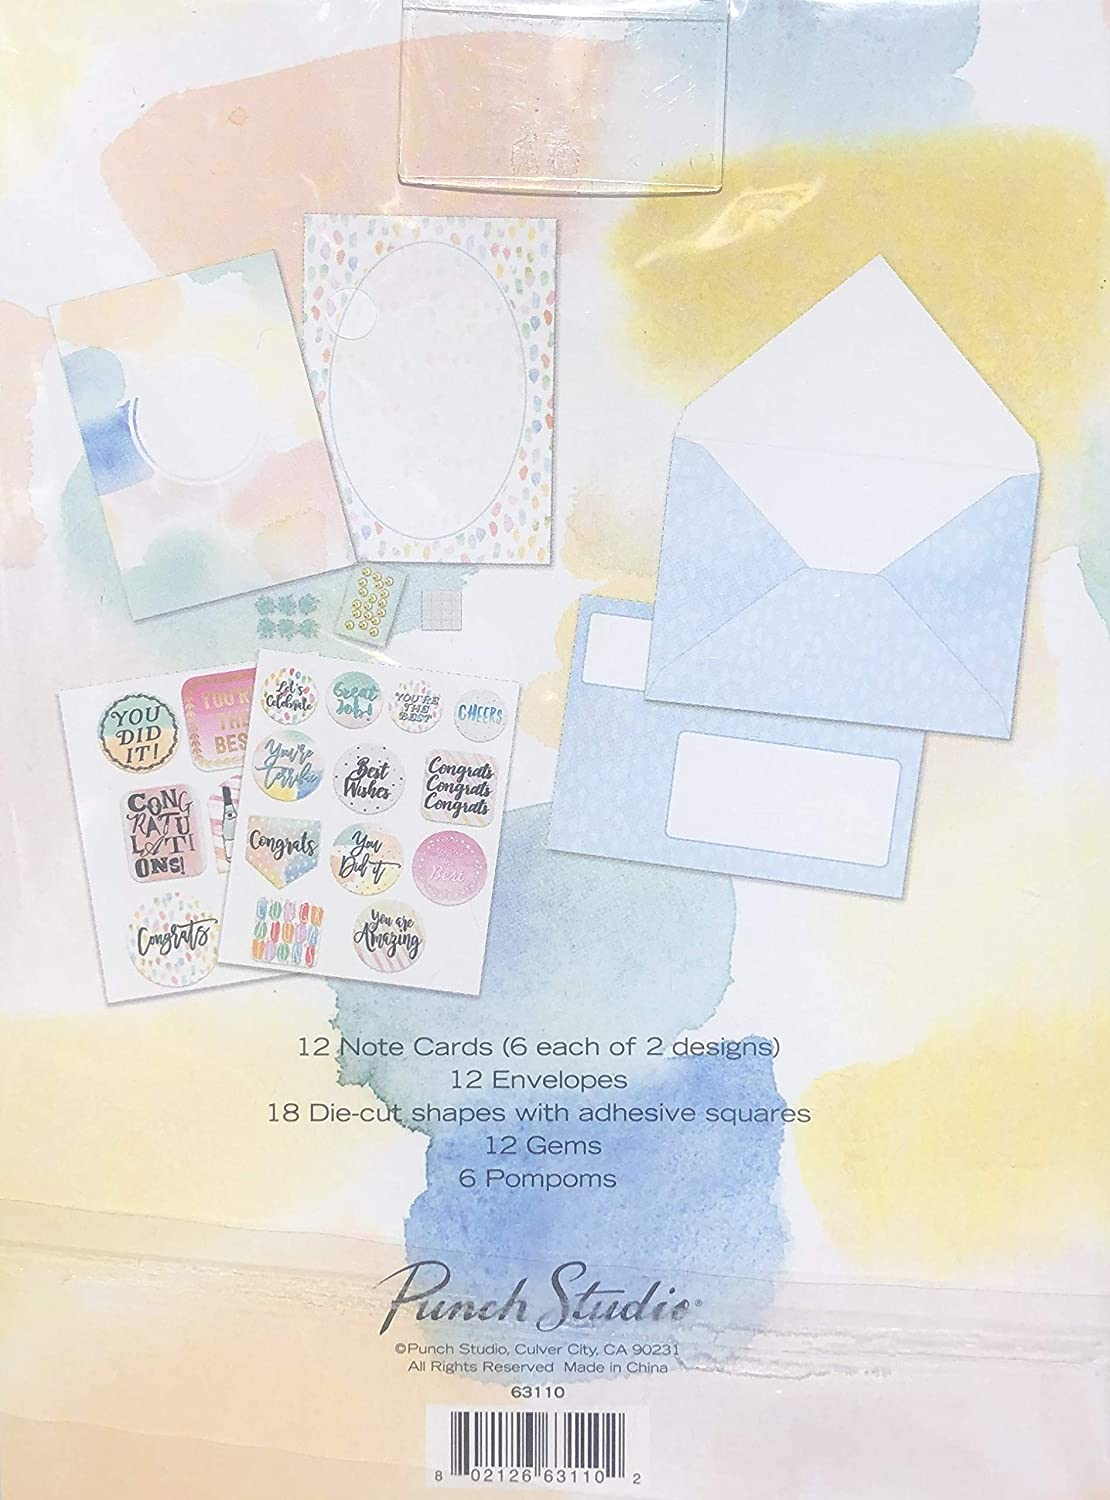 Congrats Collection Create a Card Makes 12 Custom Cards Punch Studio 63110 Note Cards Envelopes 12